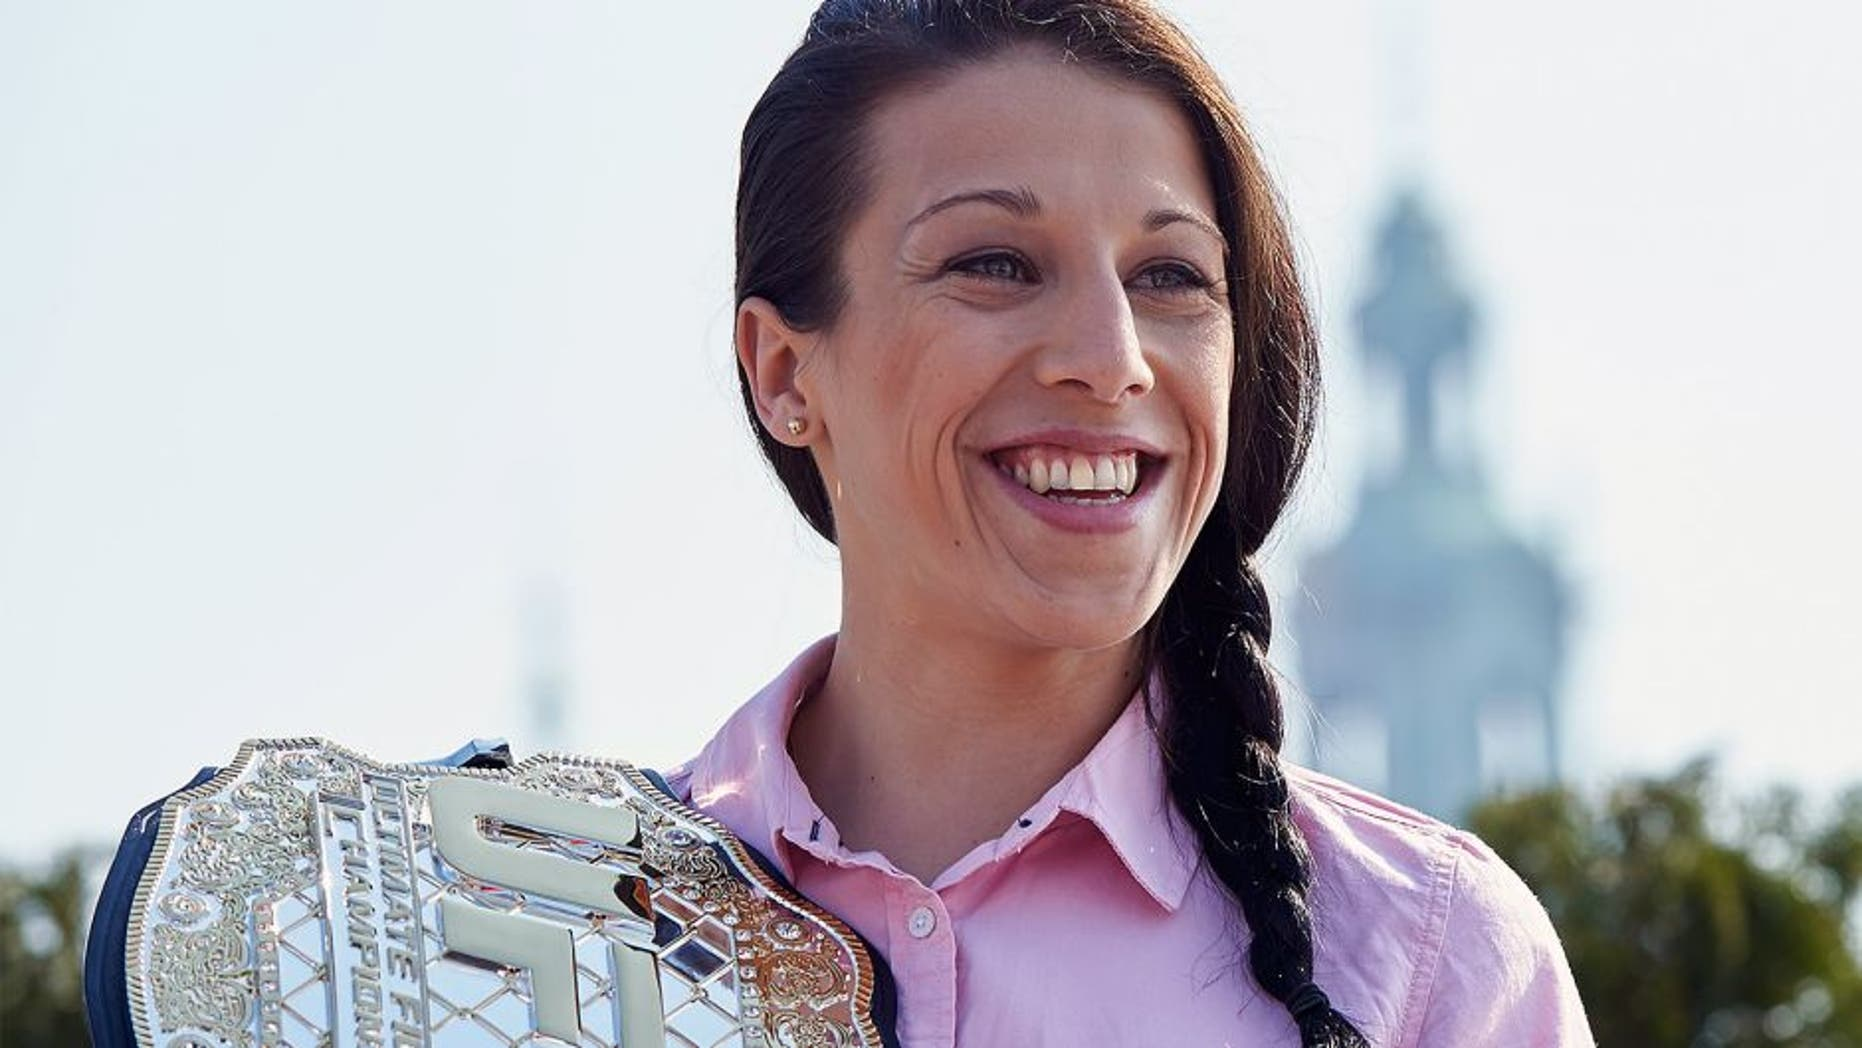 KRAKOW, POLAND - MARCH 20: Joanna Jedrzejczyk from Poland poses with UFC Champion Belt during a UFC photo session on roof terrace in Sheraton Hotel on March 20, 2015 in Krakow, Poland. (Photo by Adam Nurkiewicz/Zuffa LLC/Zuffa LLC via Getty Images)